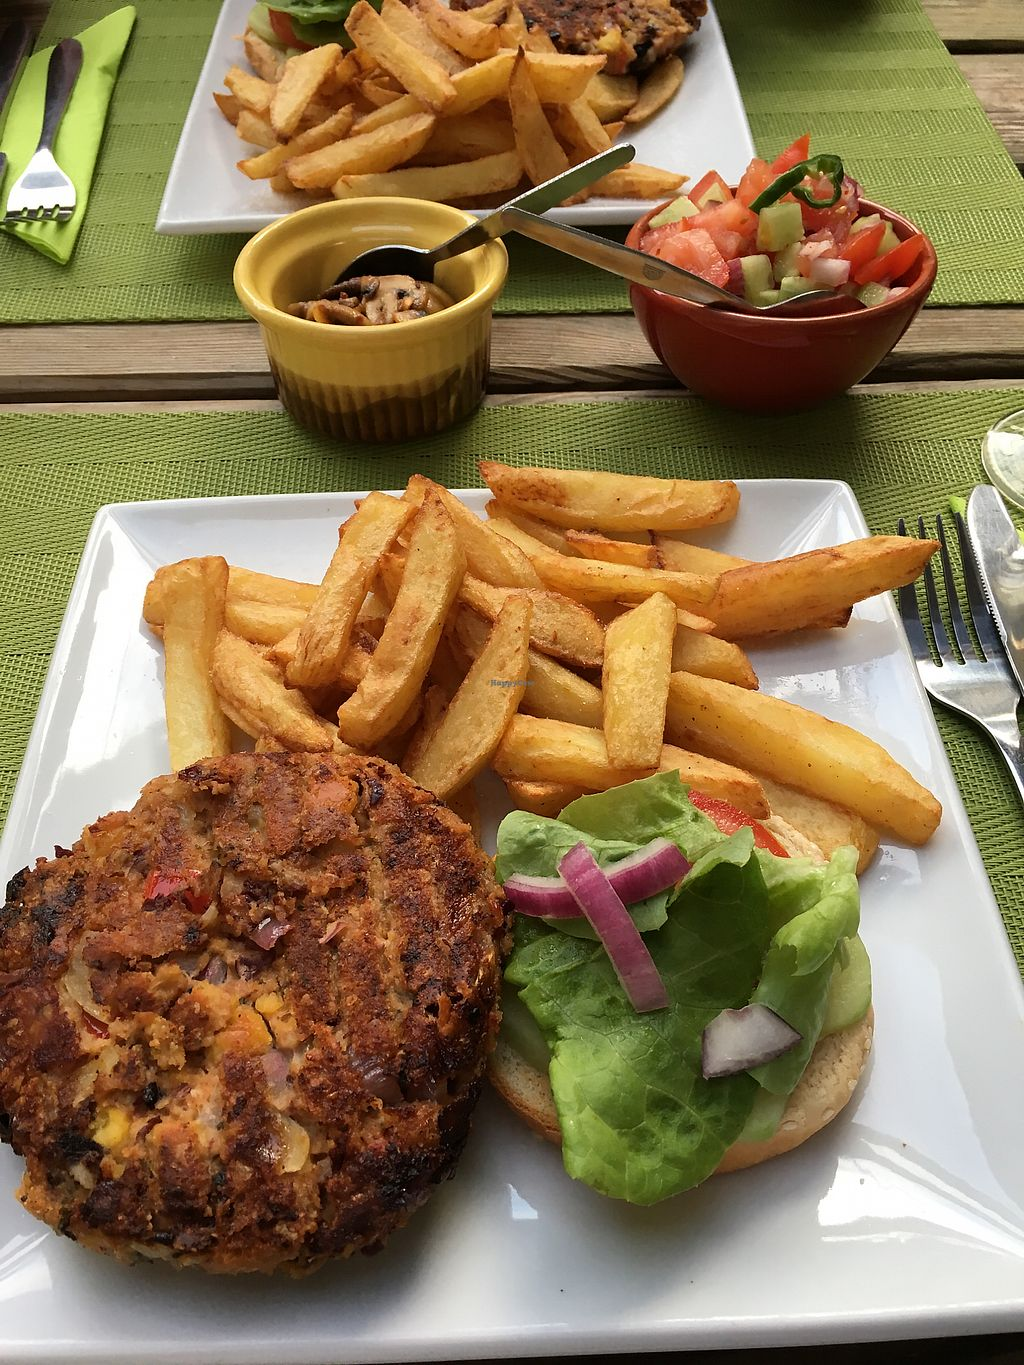 "Photo of Le Jardin de Froulay  by <a href=""/members/profile/LoesPeters"">LoesPeters</a> <br/>homemade vega burger with homemade frites! <br/> August 22, 2017  - <a href='/contact/abuse/image/90298/295982'>Report</a>"